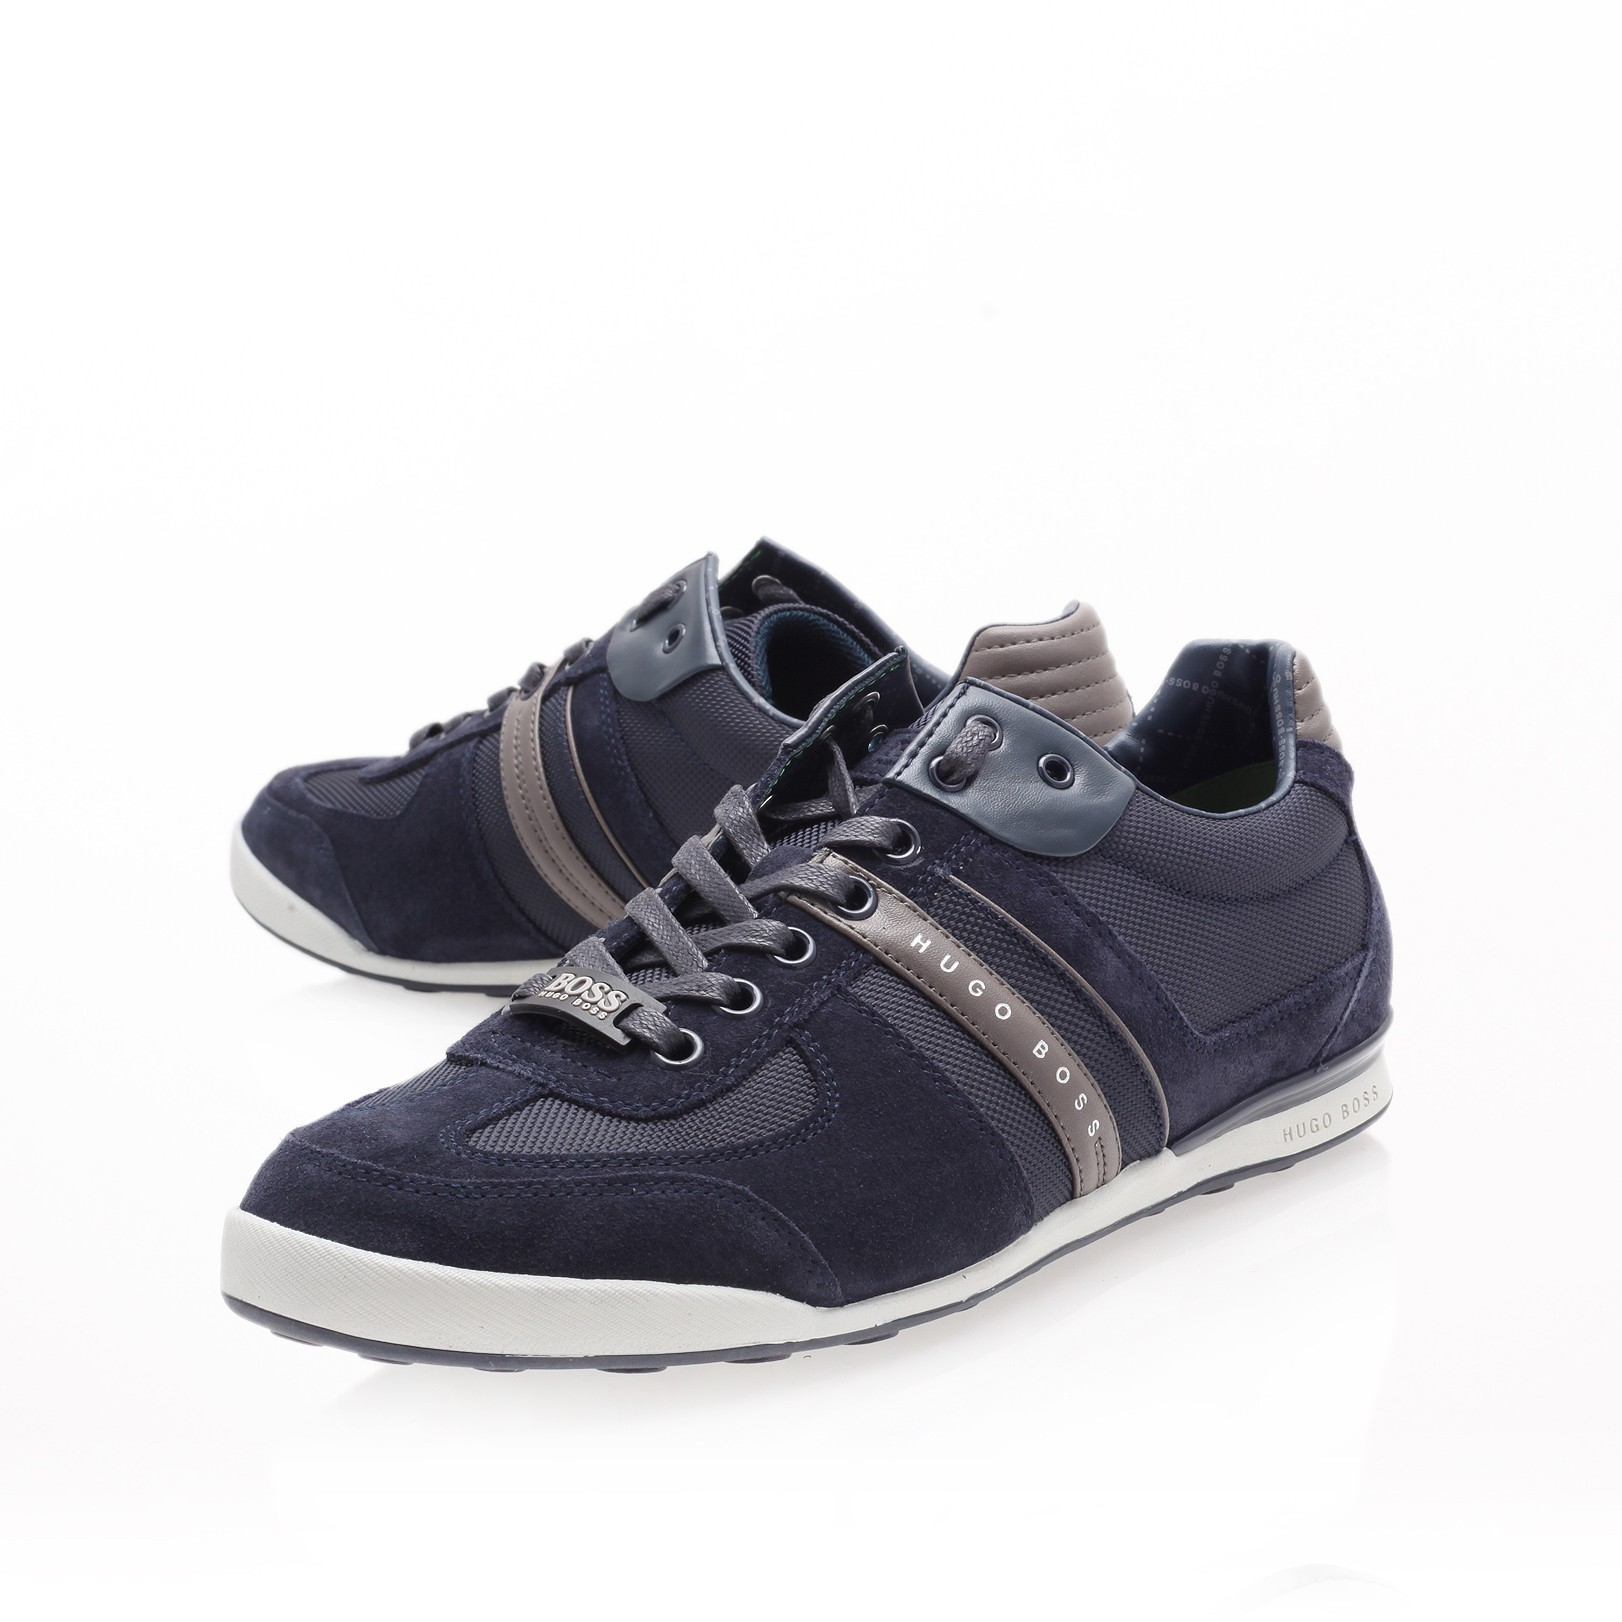 boss akeen lo pro sneaker in blue for men navy lyst. Black Bedroom Furniture Sets. Home Design Ideas